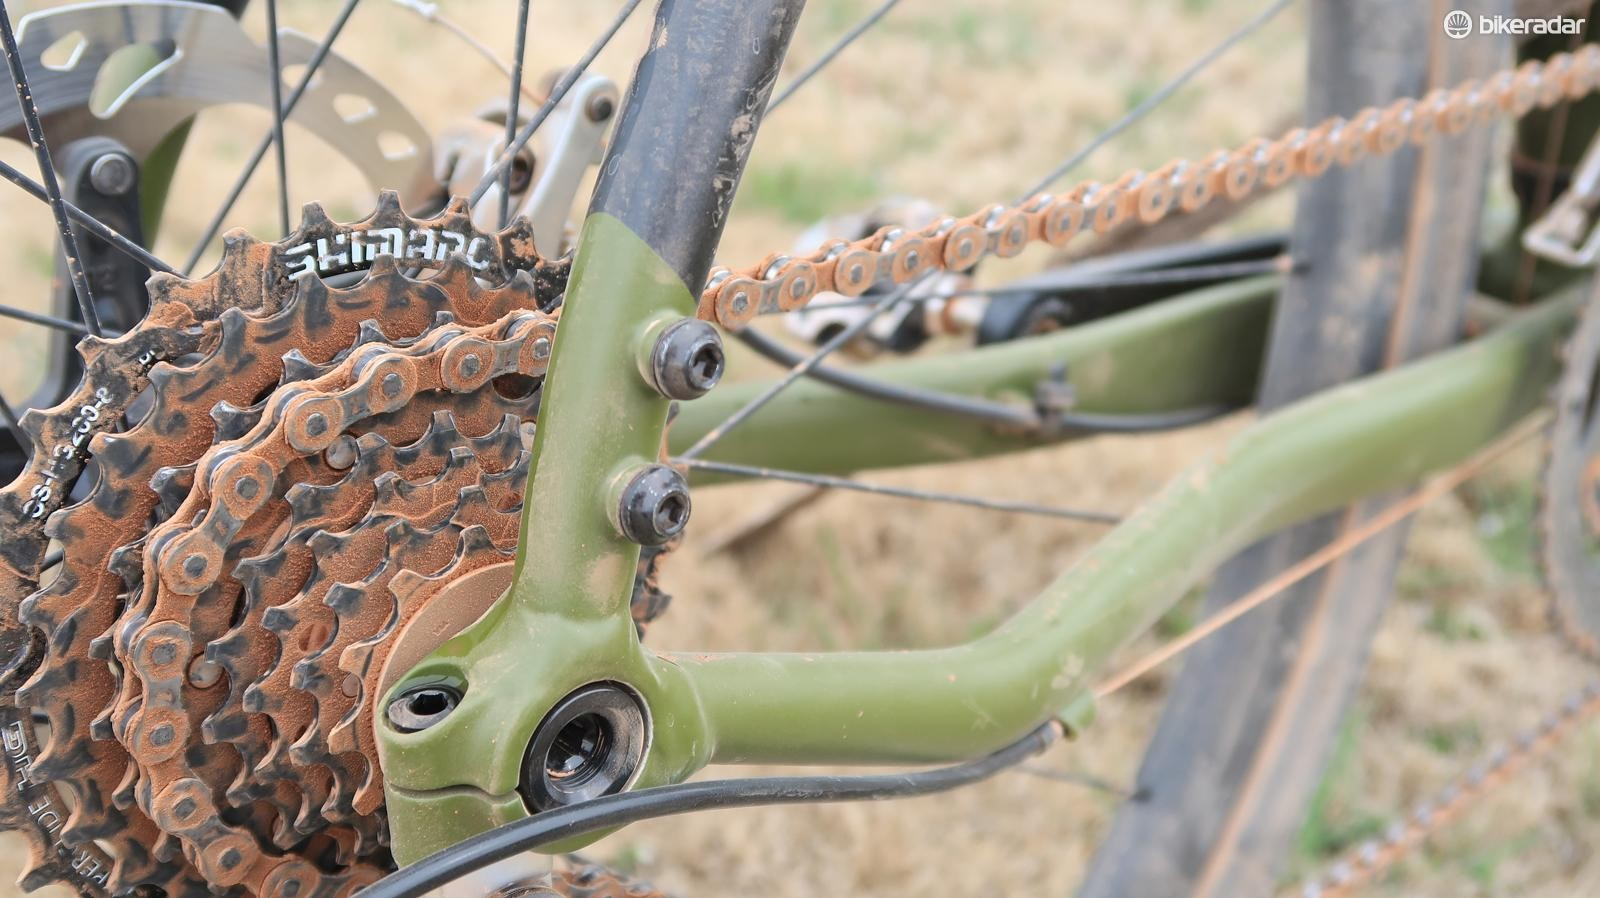 Shimano Claris might not be cutting edge, but it was surprisingly effective